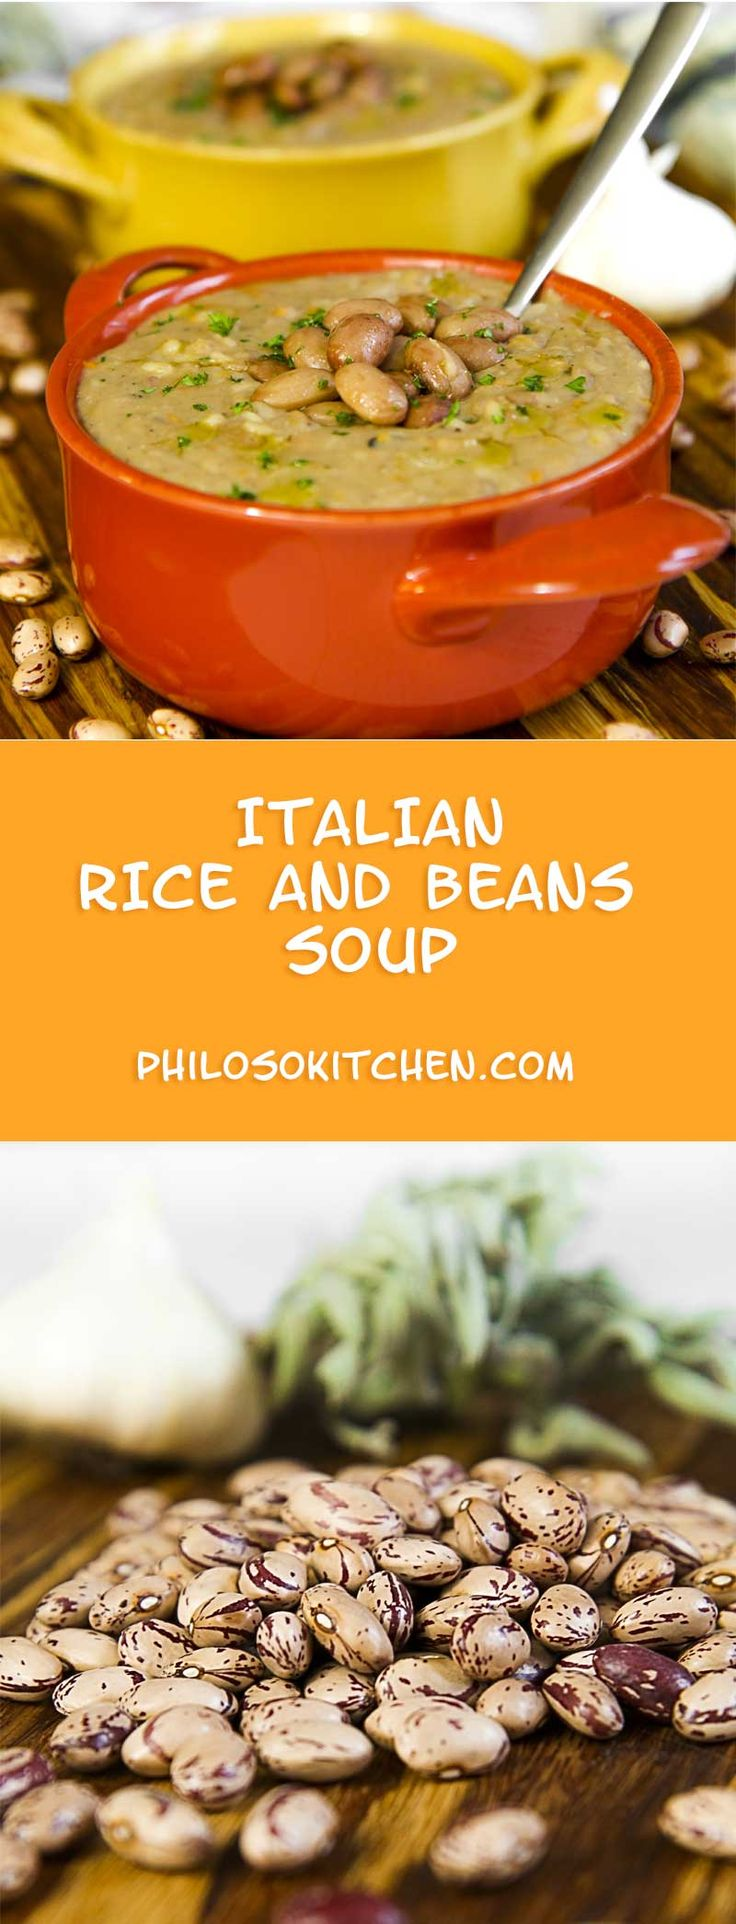 Italian rice and beans soup - a fall delight! Try this healthy autumnal cream soup, it will warm you during the coldest nights!  ---- recipe, dinner, thanksgiving, crockpot,dinner recipes